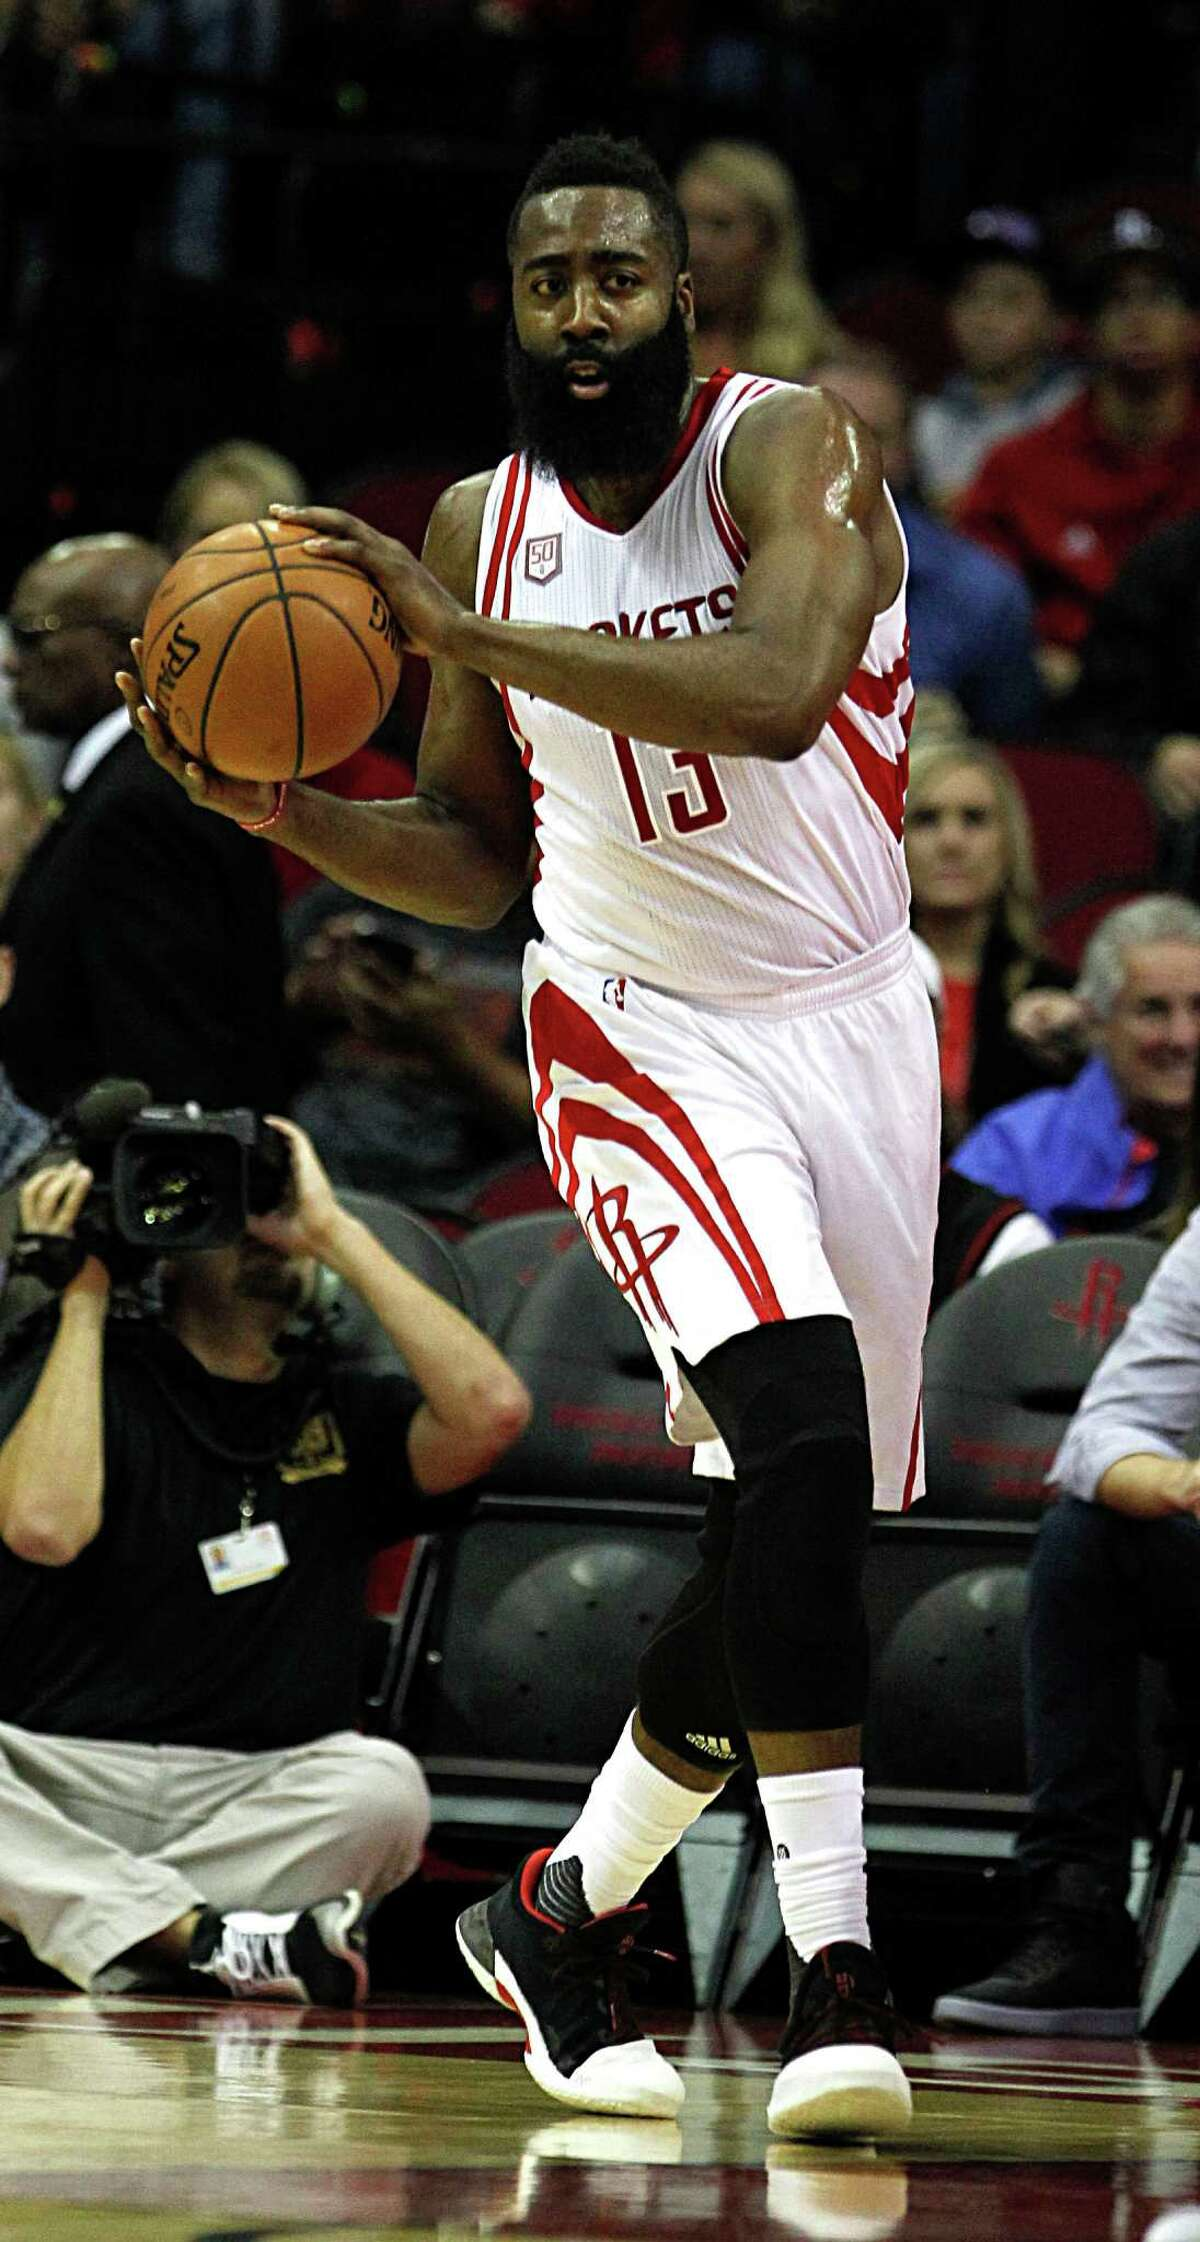 Houston Rockets guard James Harden during the first half of NBA game action against the Utah Jazz at the Toyota Center Nov. 19, 2016, in Houston.